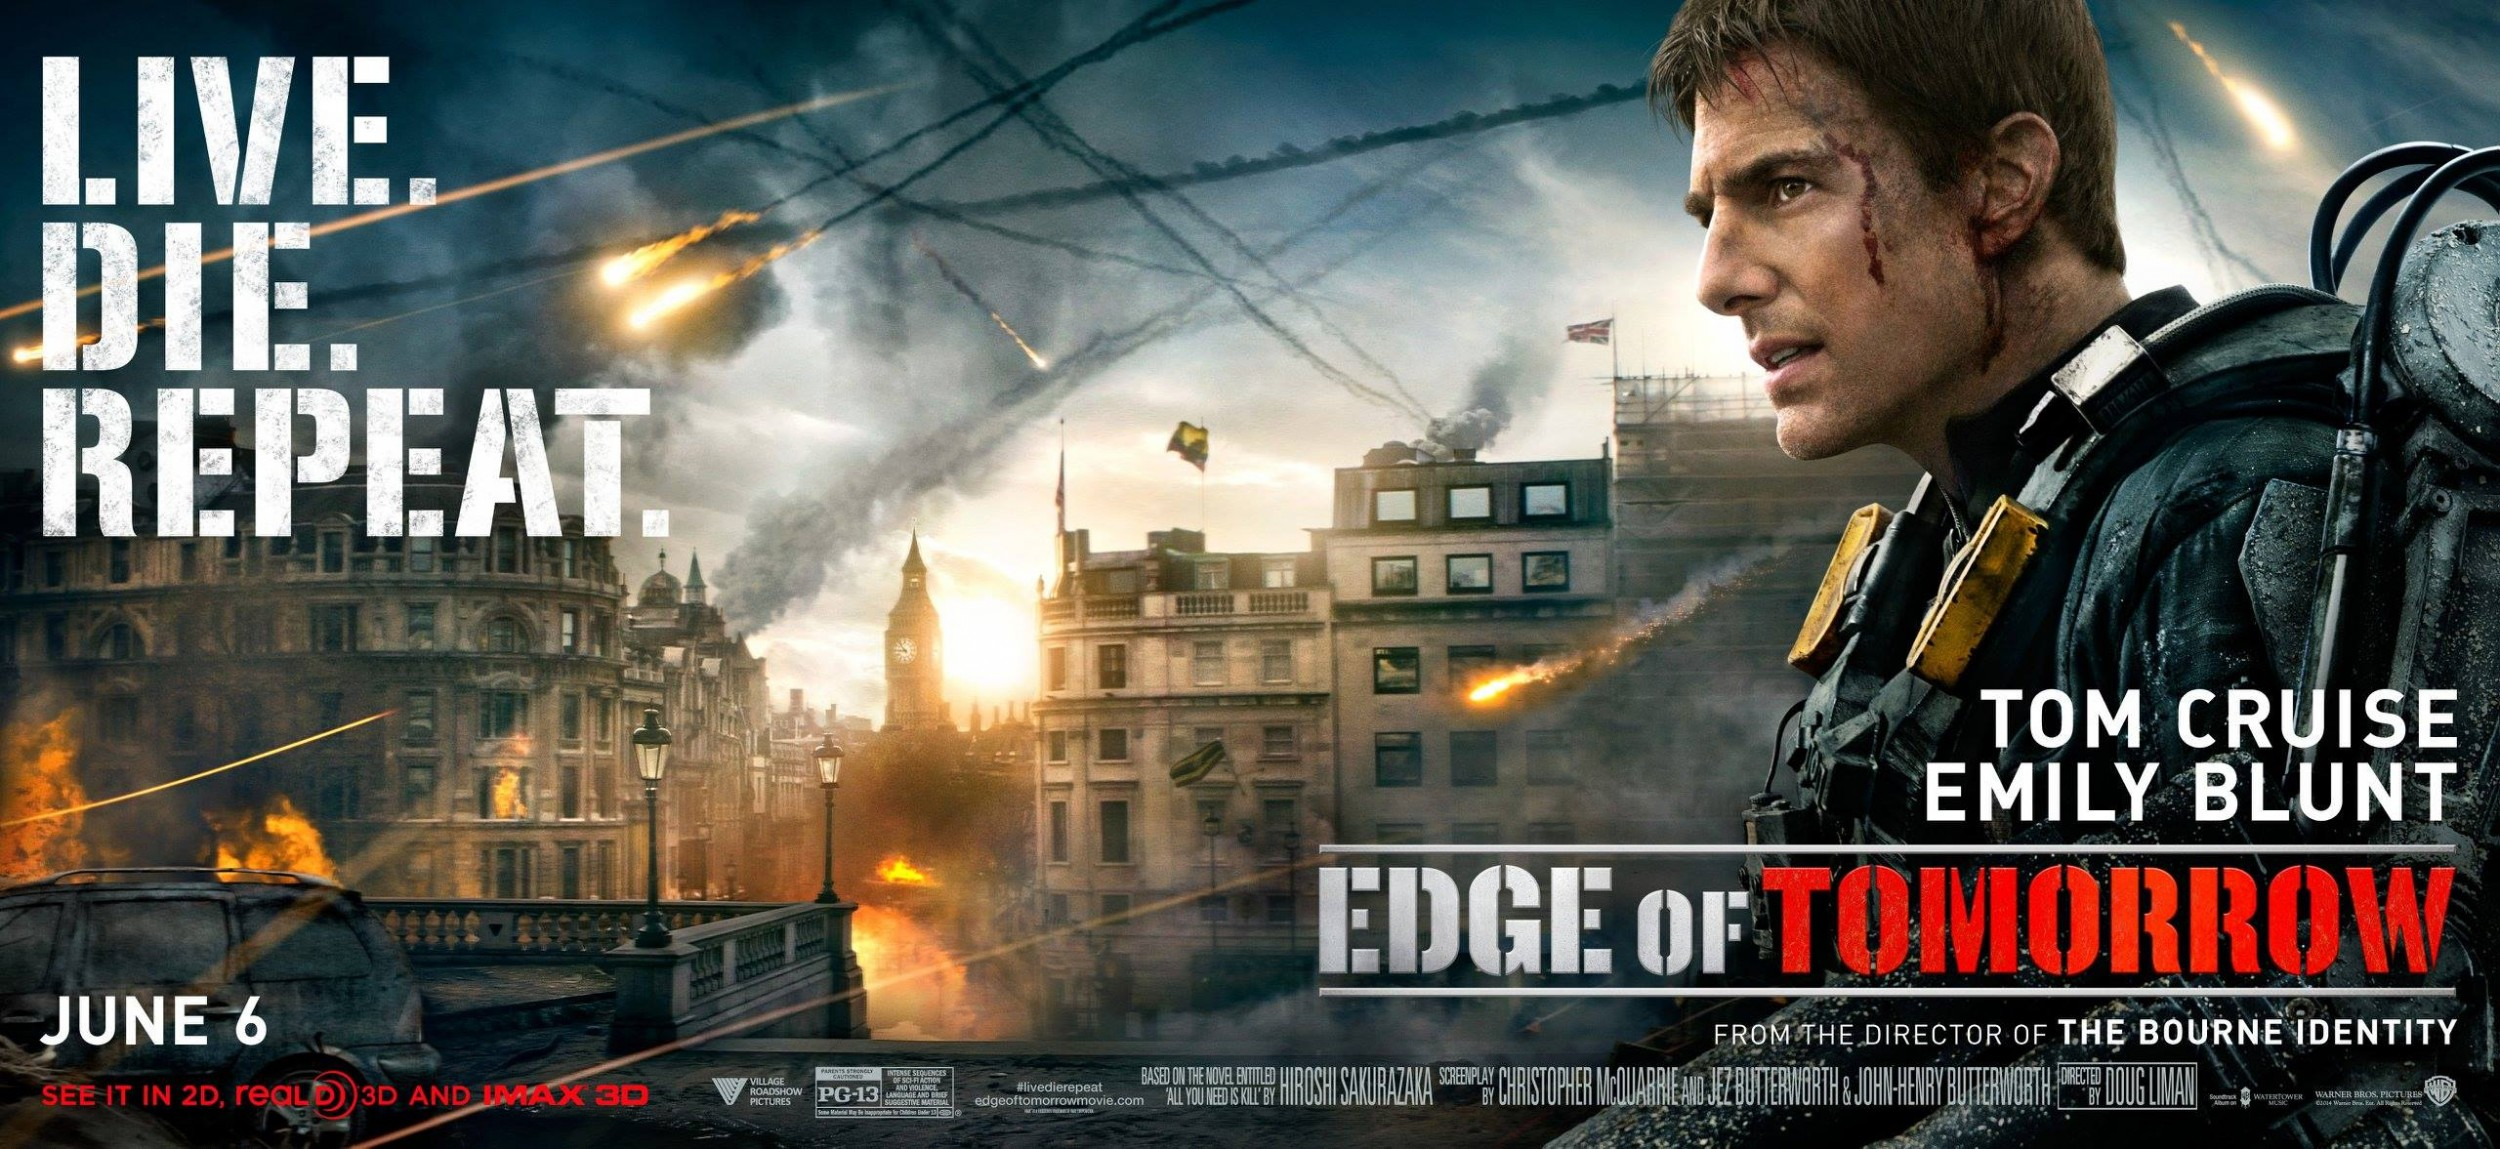 Edge of Tomorrow-Official Poster Banner PROMO XXLG-25ABRIL2014-02